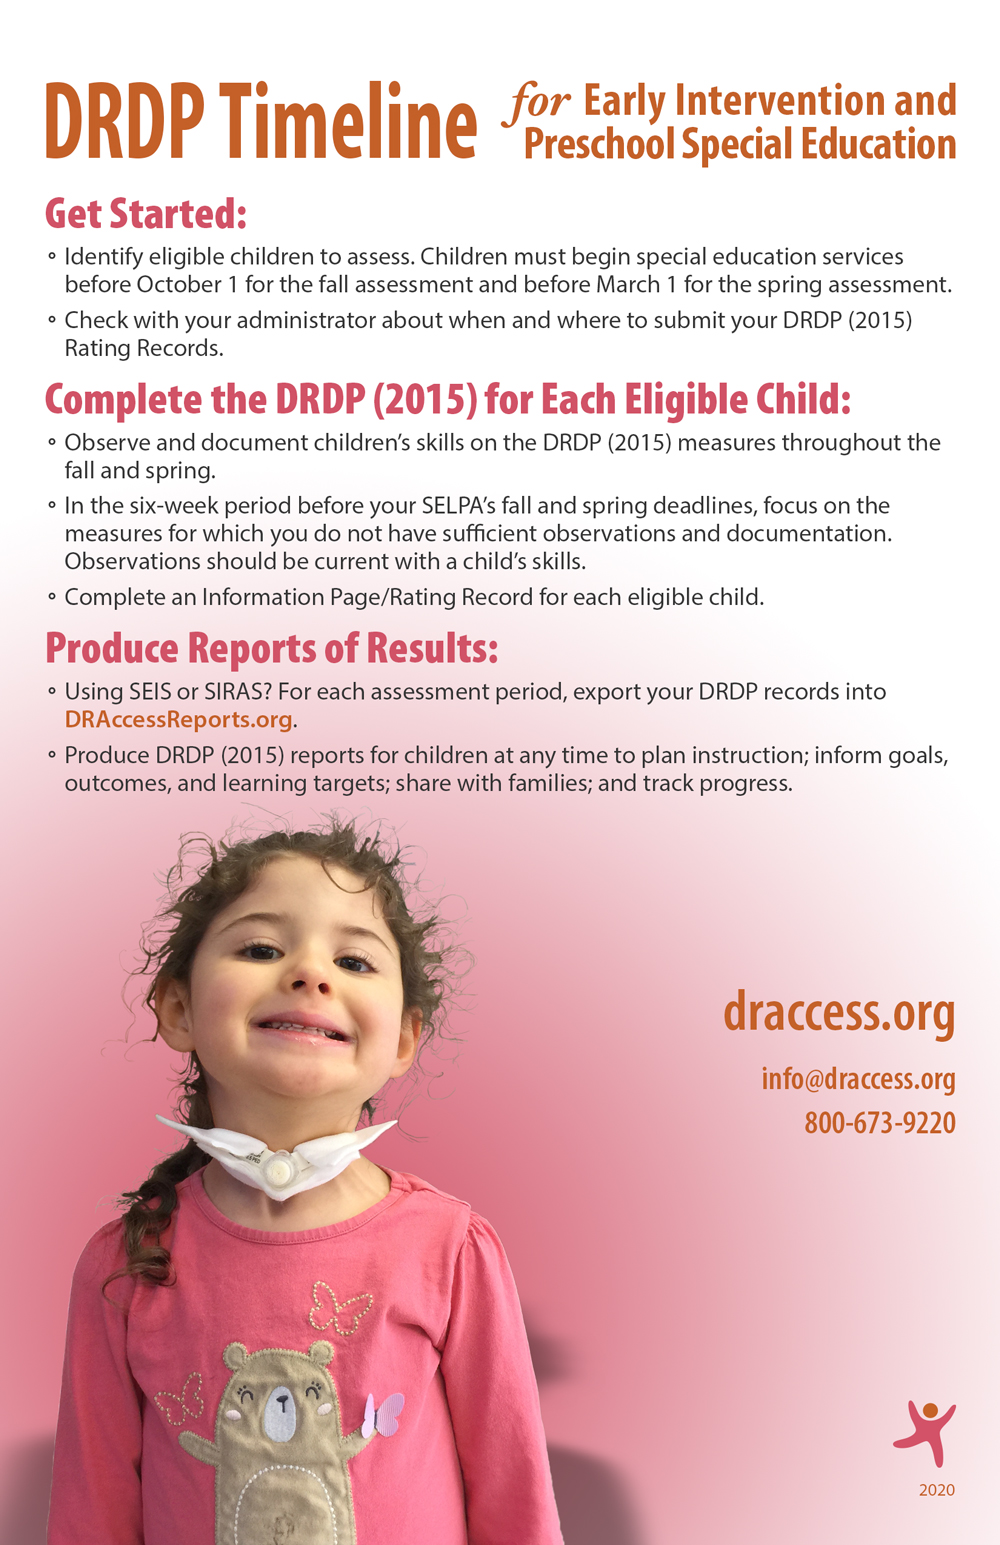 DRDP Timeline for Early Intervention and Preschool Special Education